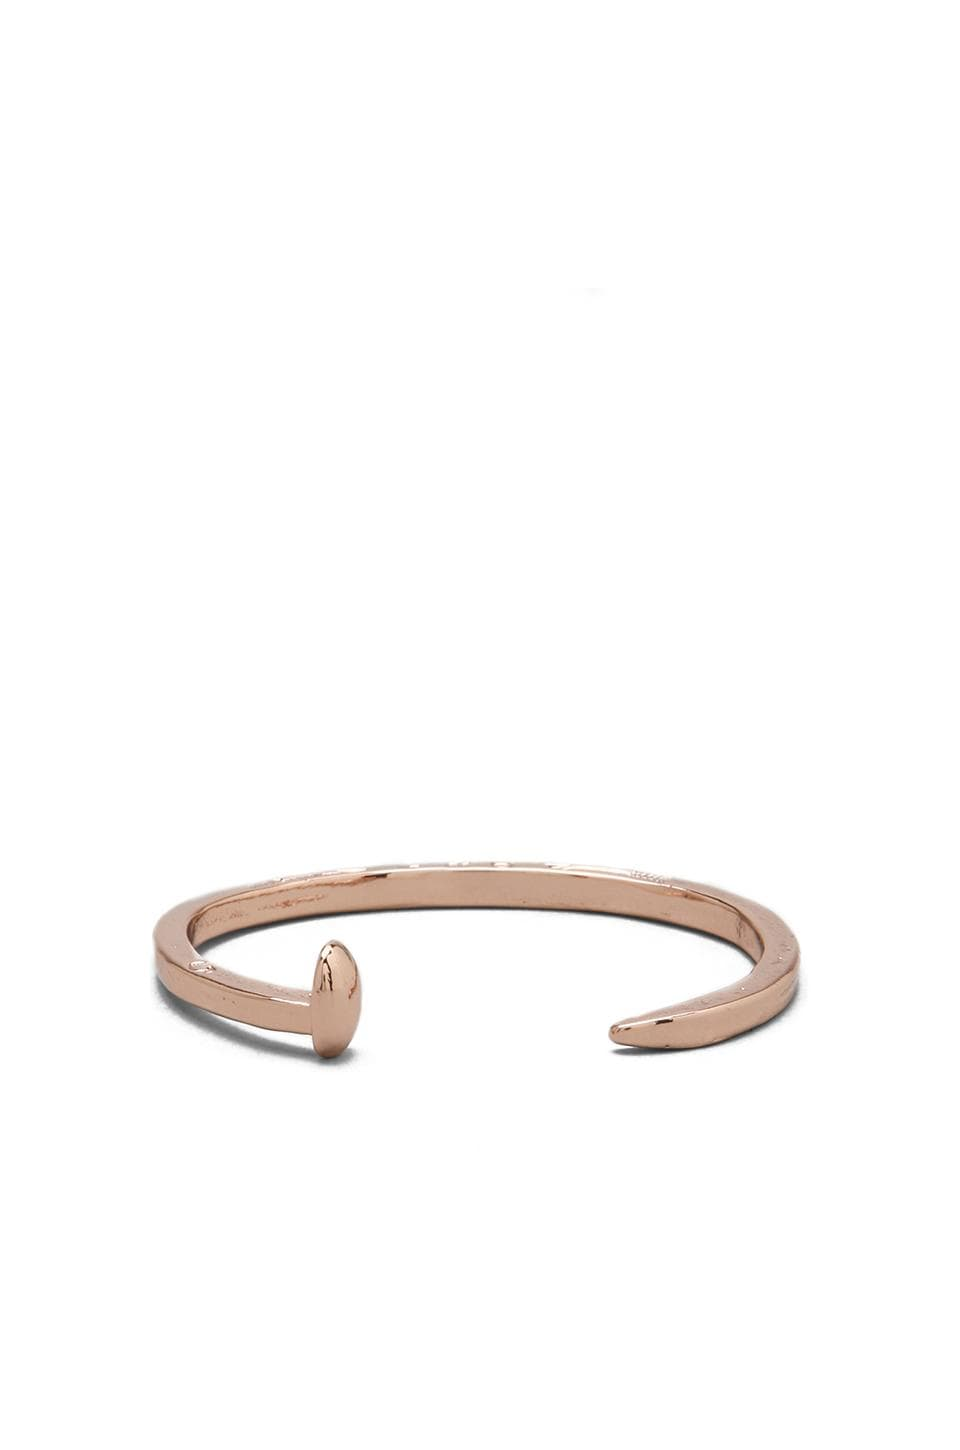 Giles & Brother Skinny Railroad Spike Cuff in Rose Gold Finish